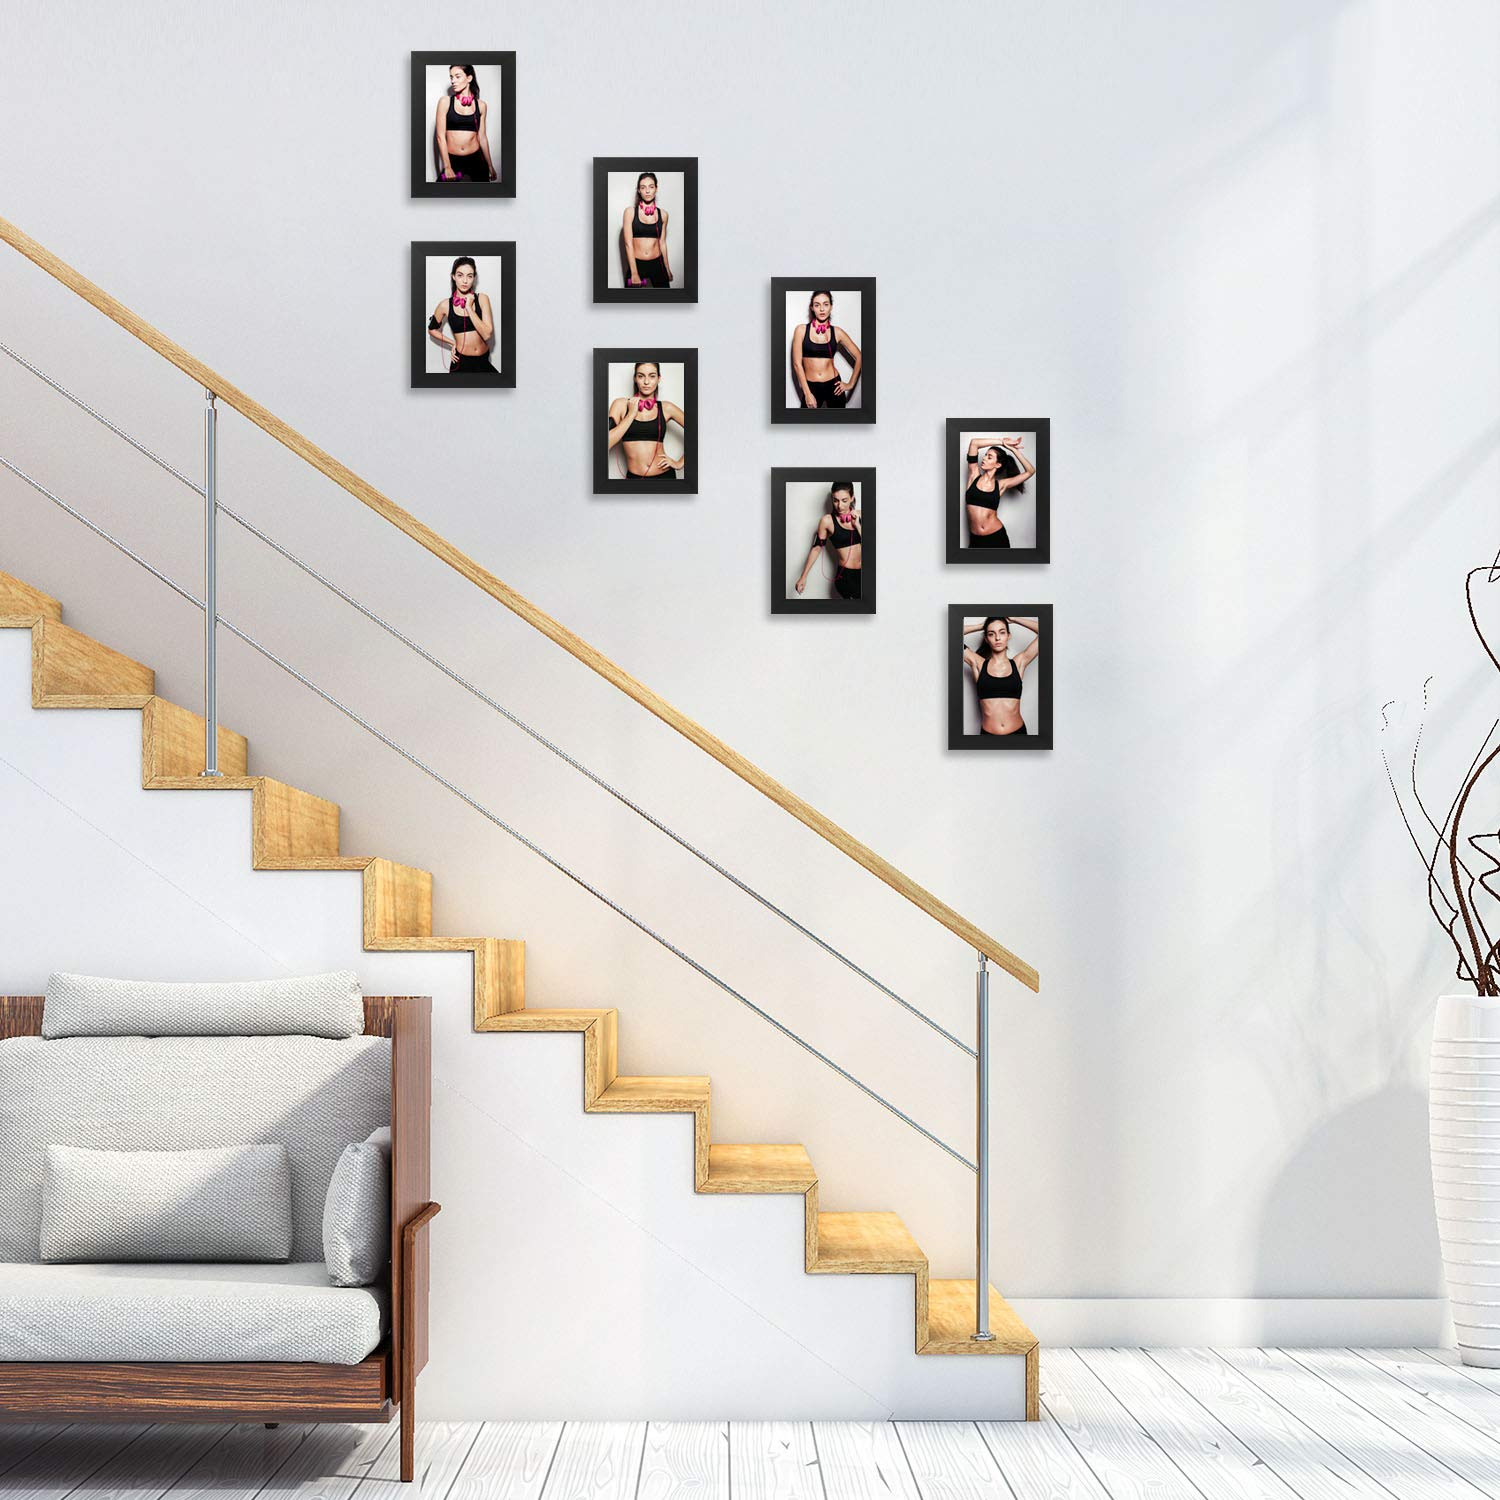 Mounting Hardware Included ONE WALL Tempered Glass 1PCS 4x6 Picture Frame Black Wood Frame for Wall and Tabletop